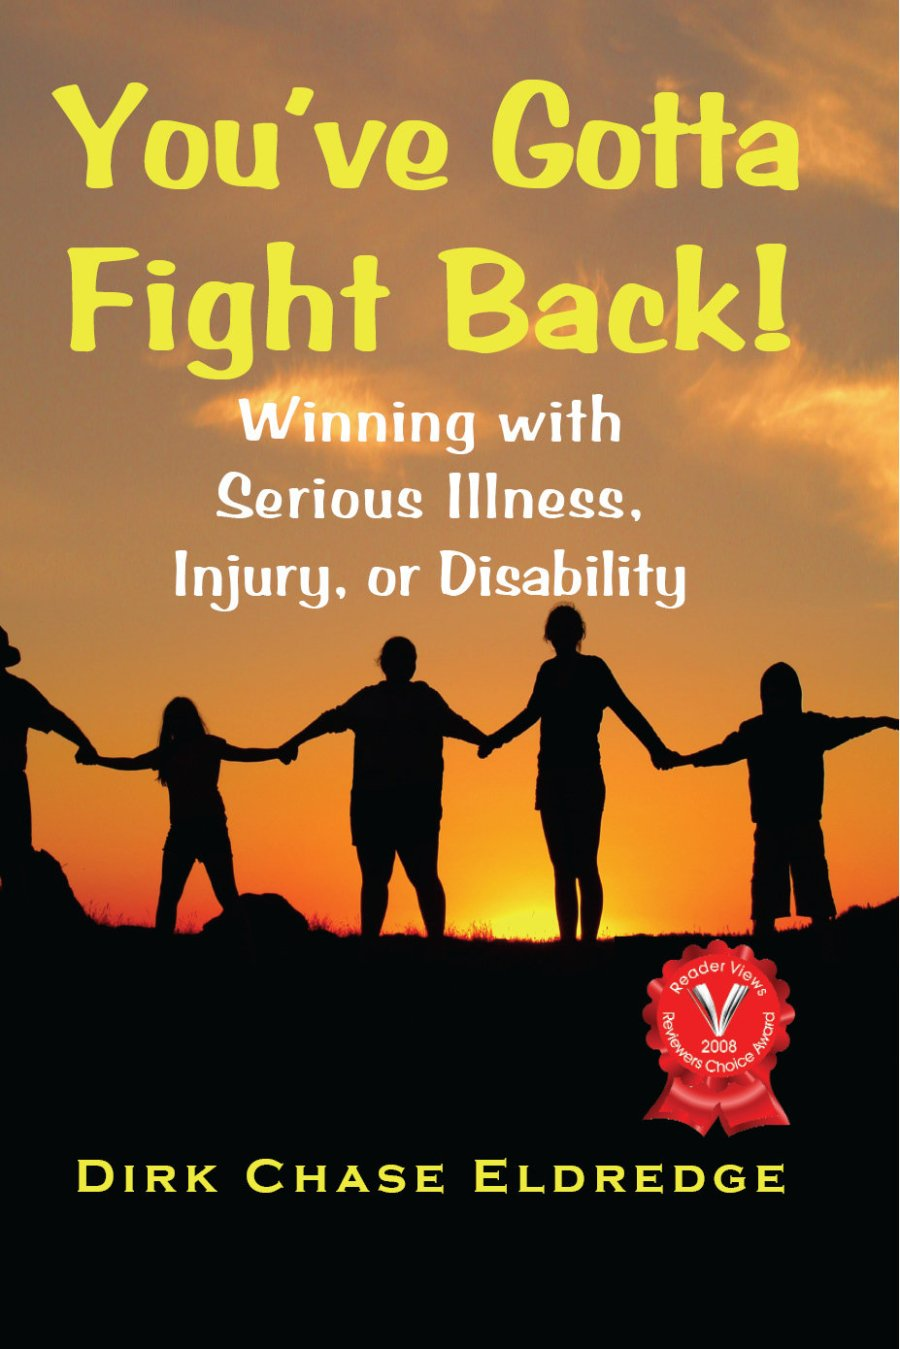 You've Gotta Fight Back!: Winning with serious illness, injury, or disability